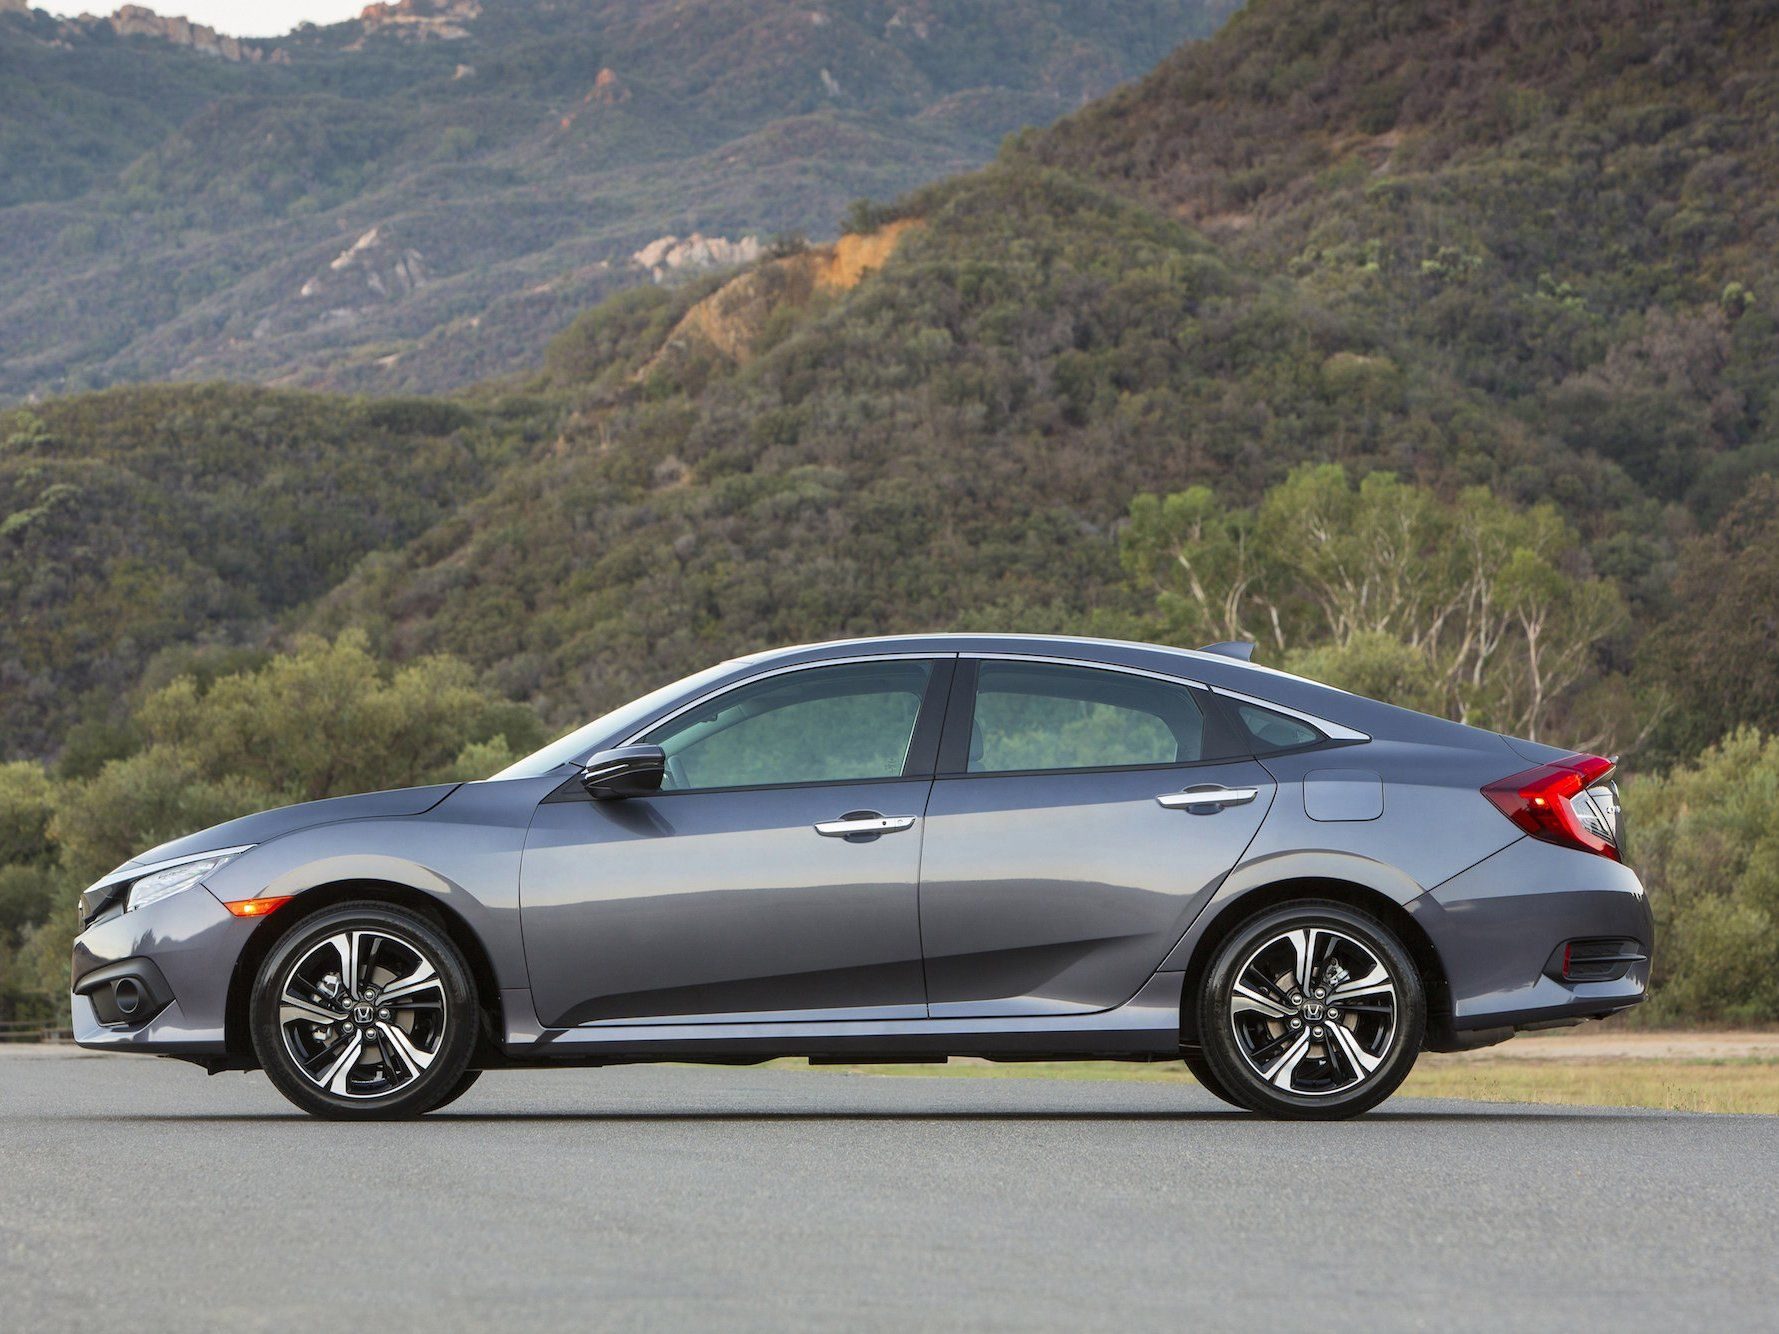 This Honda Is The Most Affordable High Tech Car You Can Buy 2016 Honda Civic Sedan Honda Civic Sedan Civic Sedan